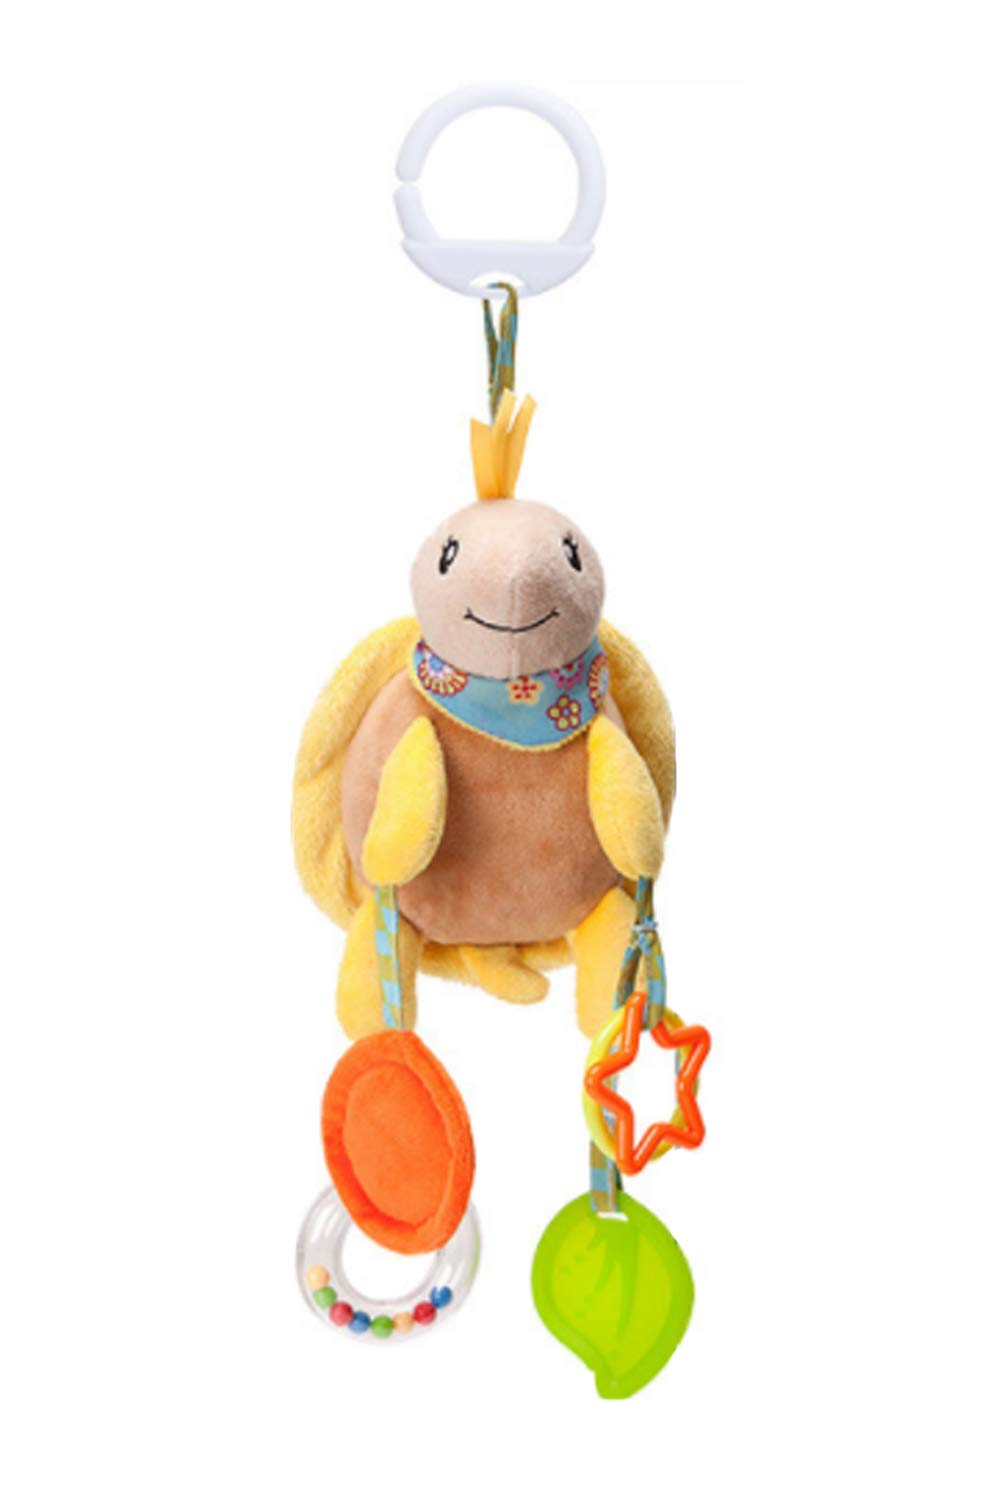 SMTD Kids Hanging Toy for Crib with Teethers and Rattle Ring Mirror for Self Discovery Safety Squeaker Stroller Hanging Toys Non-Toxic Material Bed Hanging Bells Owl